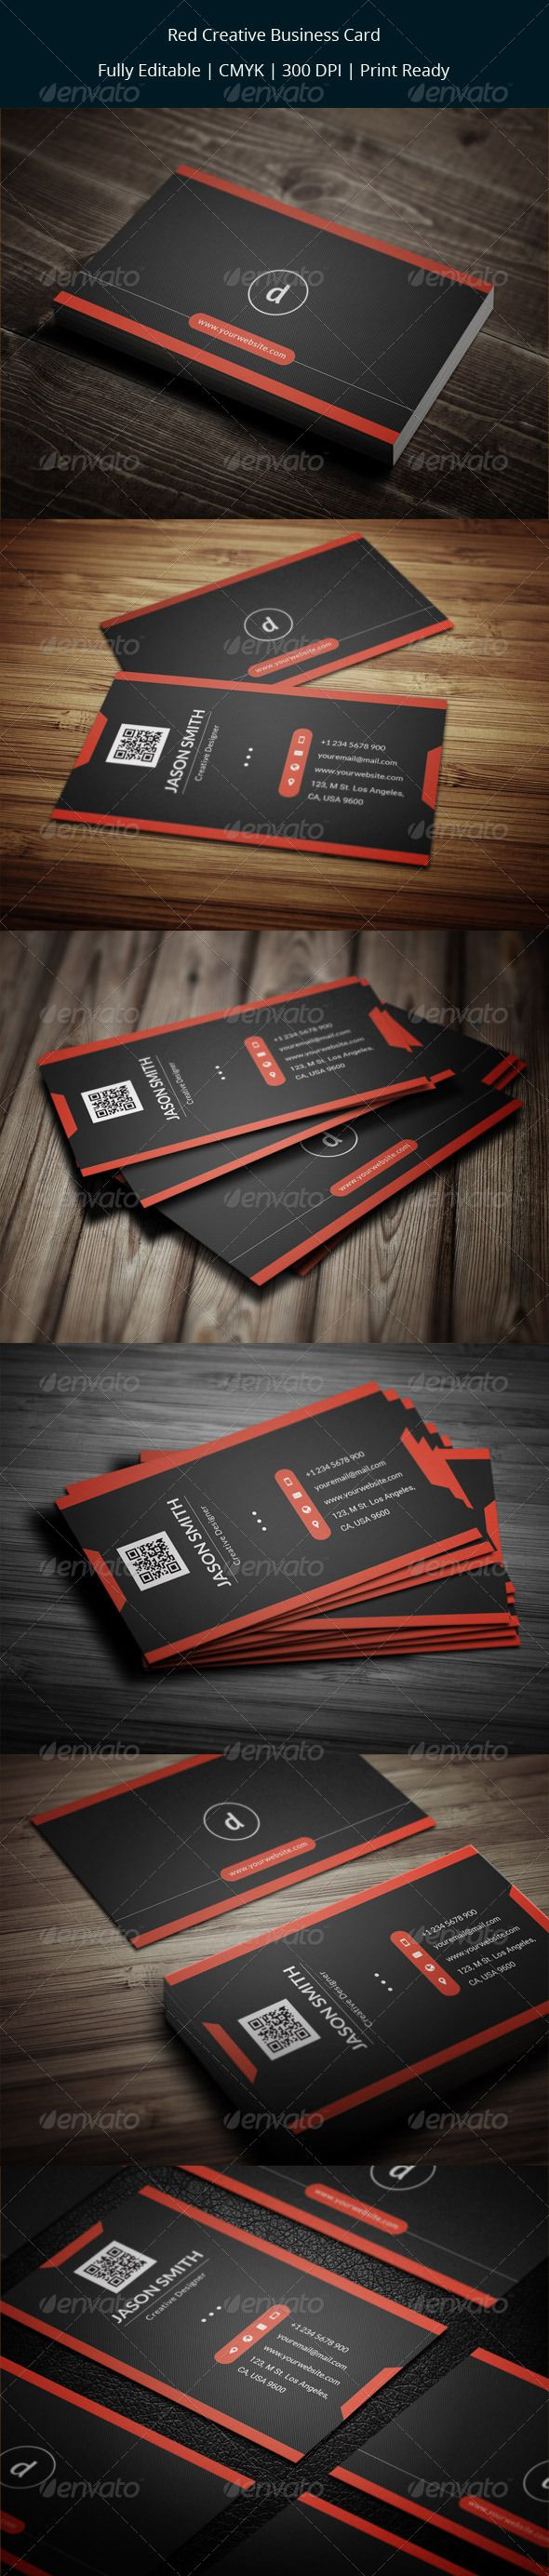 70 best images on pinterest cars fonts and business red creative business card magicingreecefo Gallery